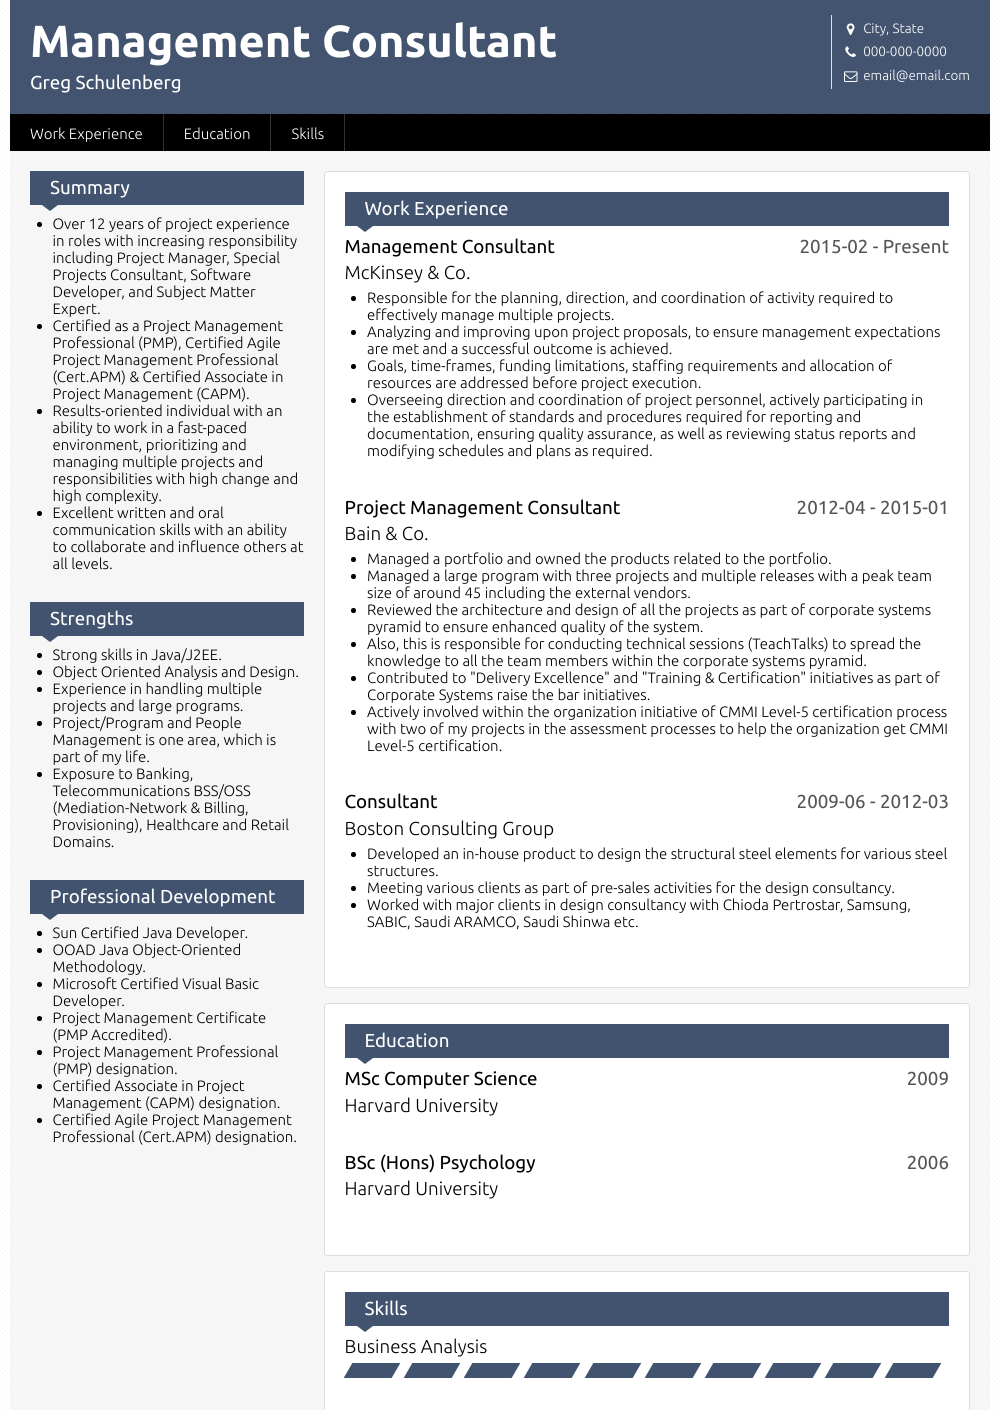 Management Consultant Resume Sample and Template